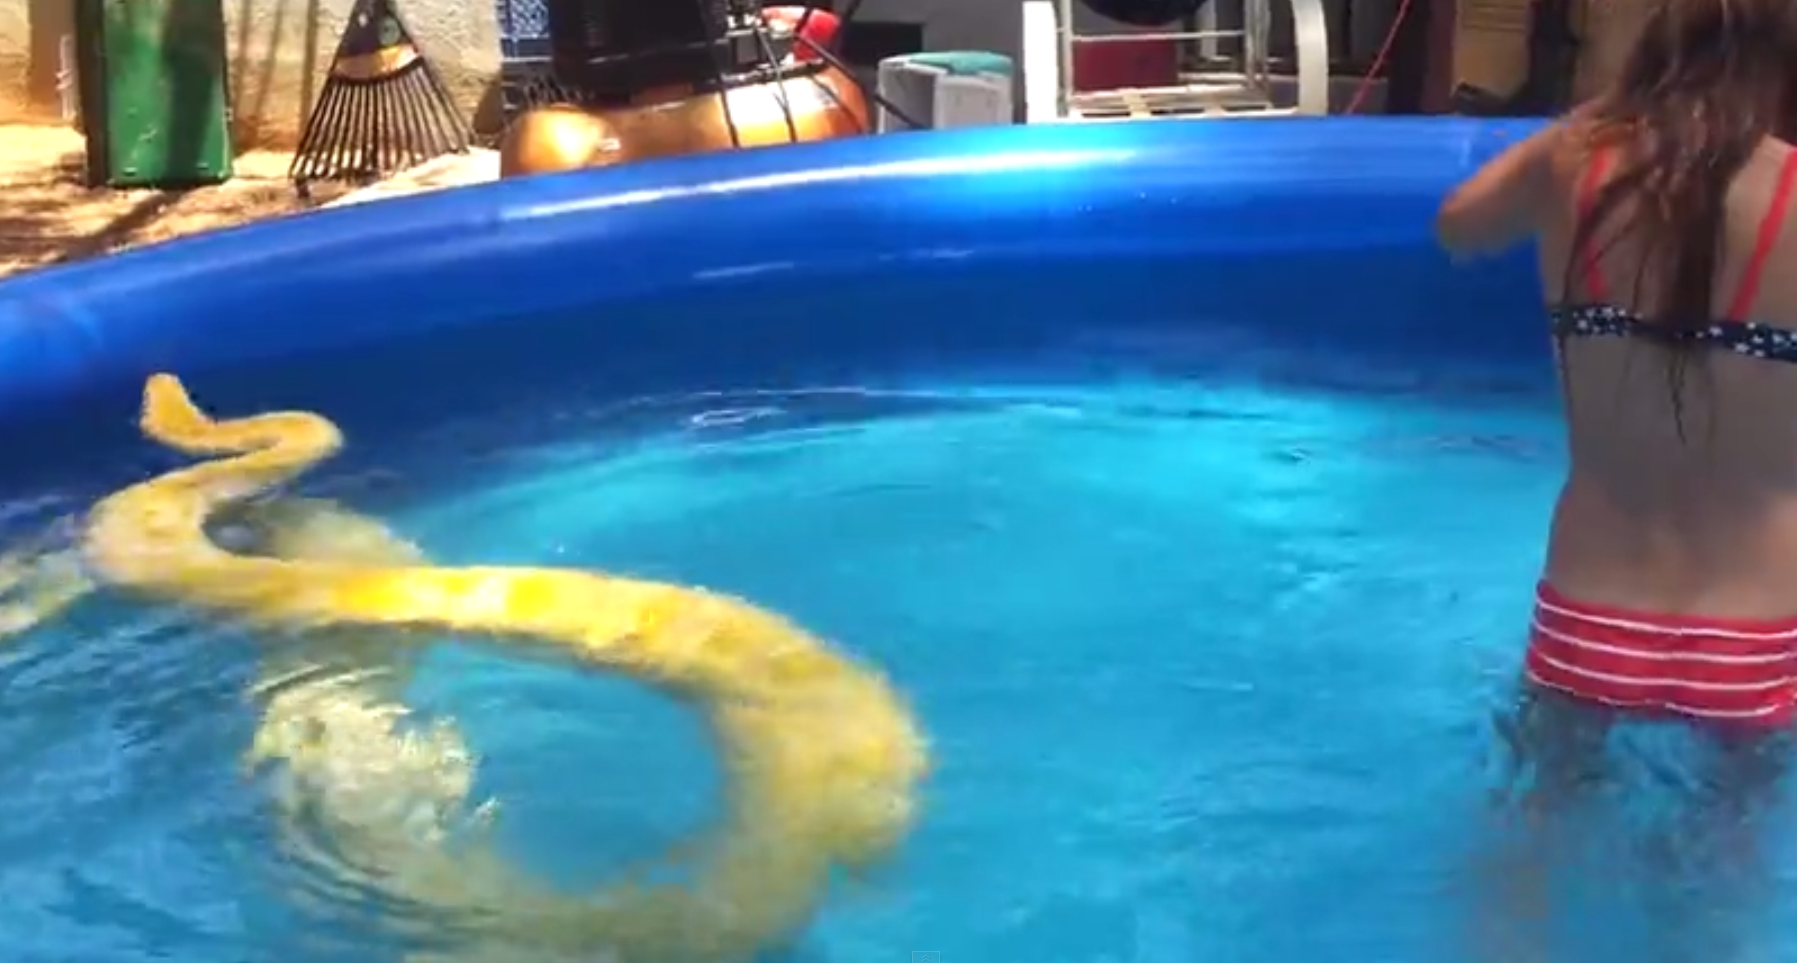 A Giant Python Swimming In A Pool With a Kid